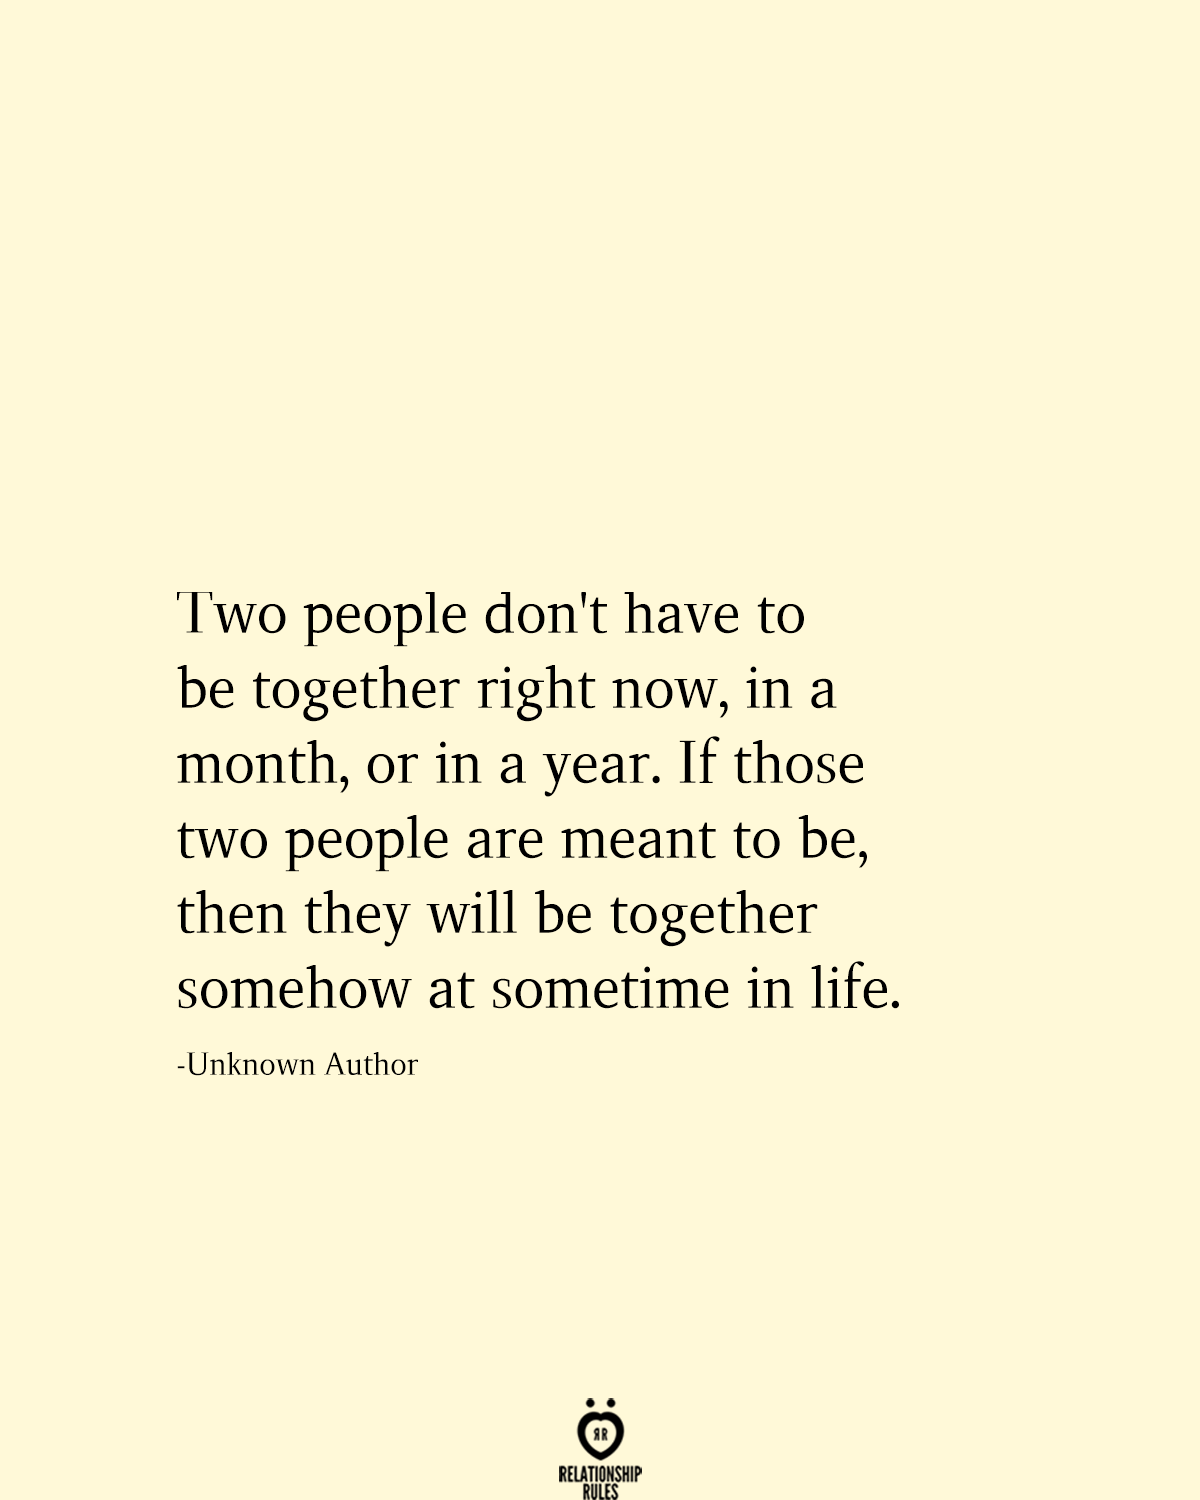 Two People Don't Have To Be Together Right Now, In A Month, Or In A Year